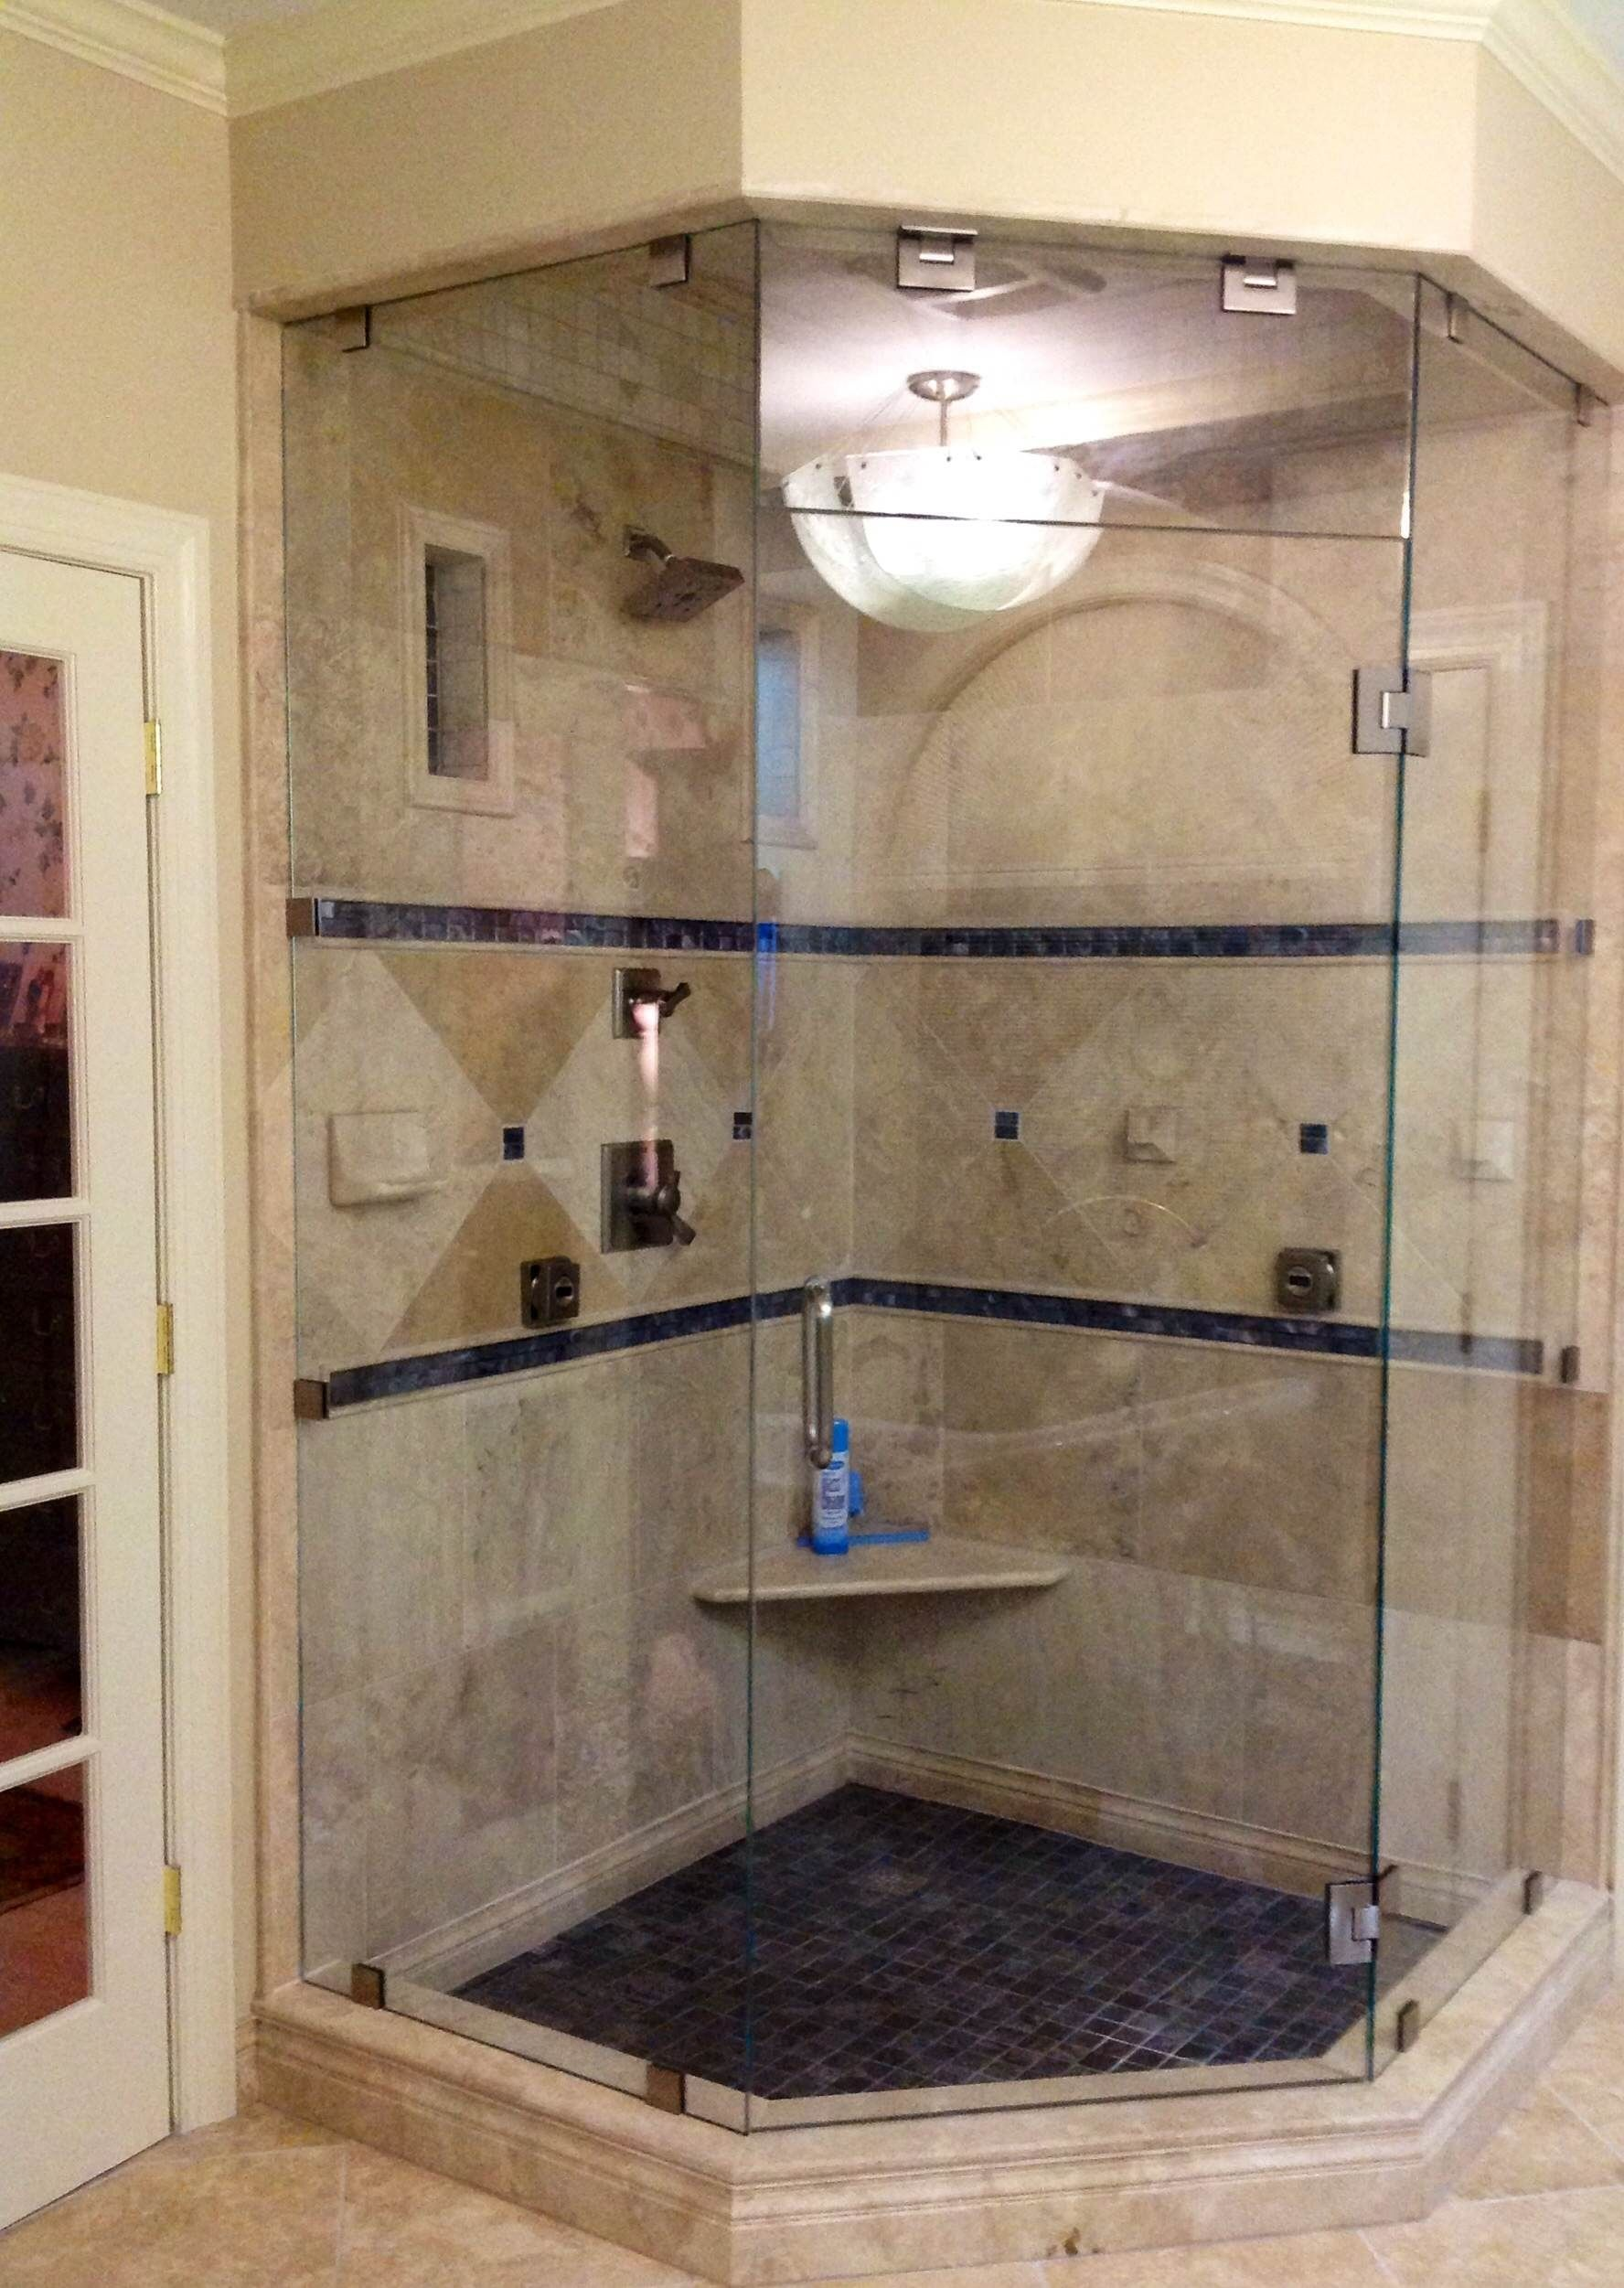 Glamorous Home Depot Shower Doors Designs You Will Want In Your Bathroom Right Now In 2020 Neo Angle Shower Glass Shower Replacement Shower Doors